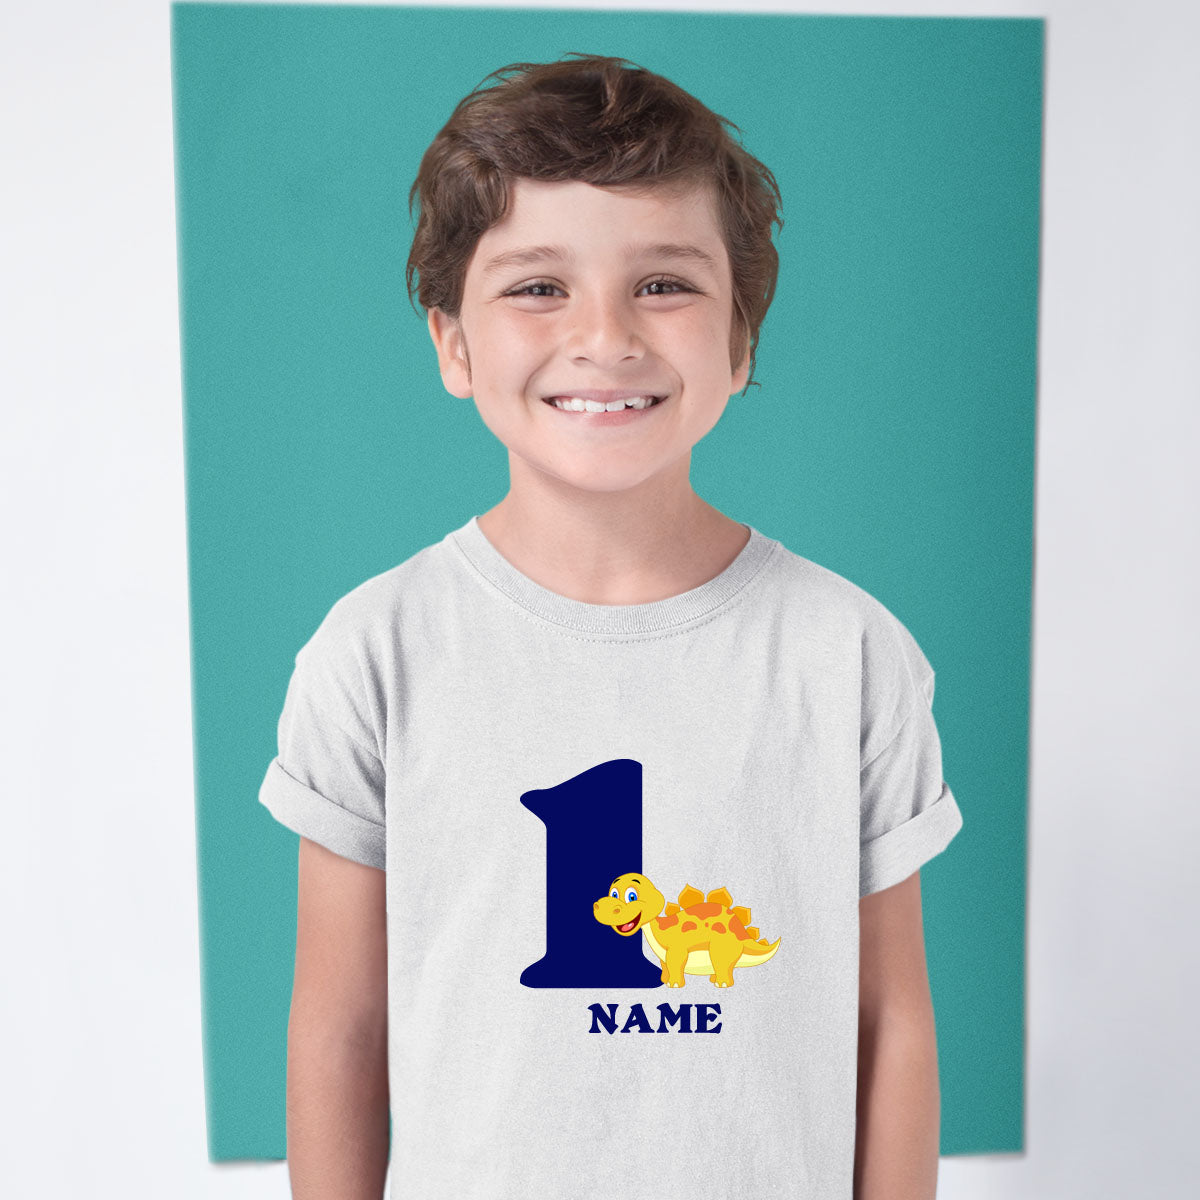 Sprinklecart Personalized Name Printed Dinosaur Birthday T Shirt | Unique 1st Birthday Dress